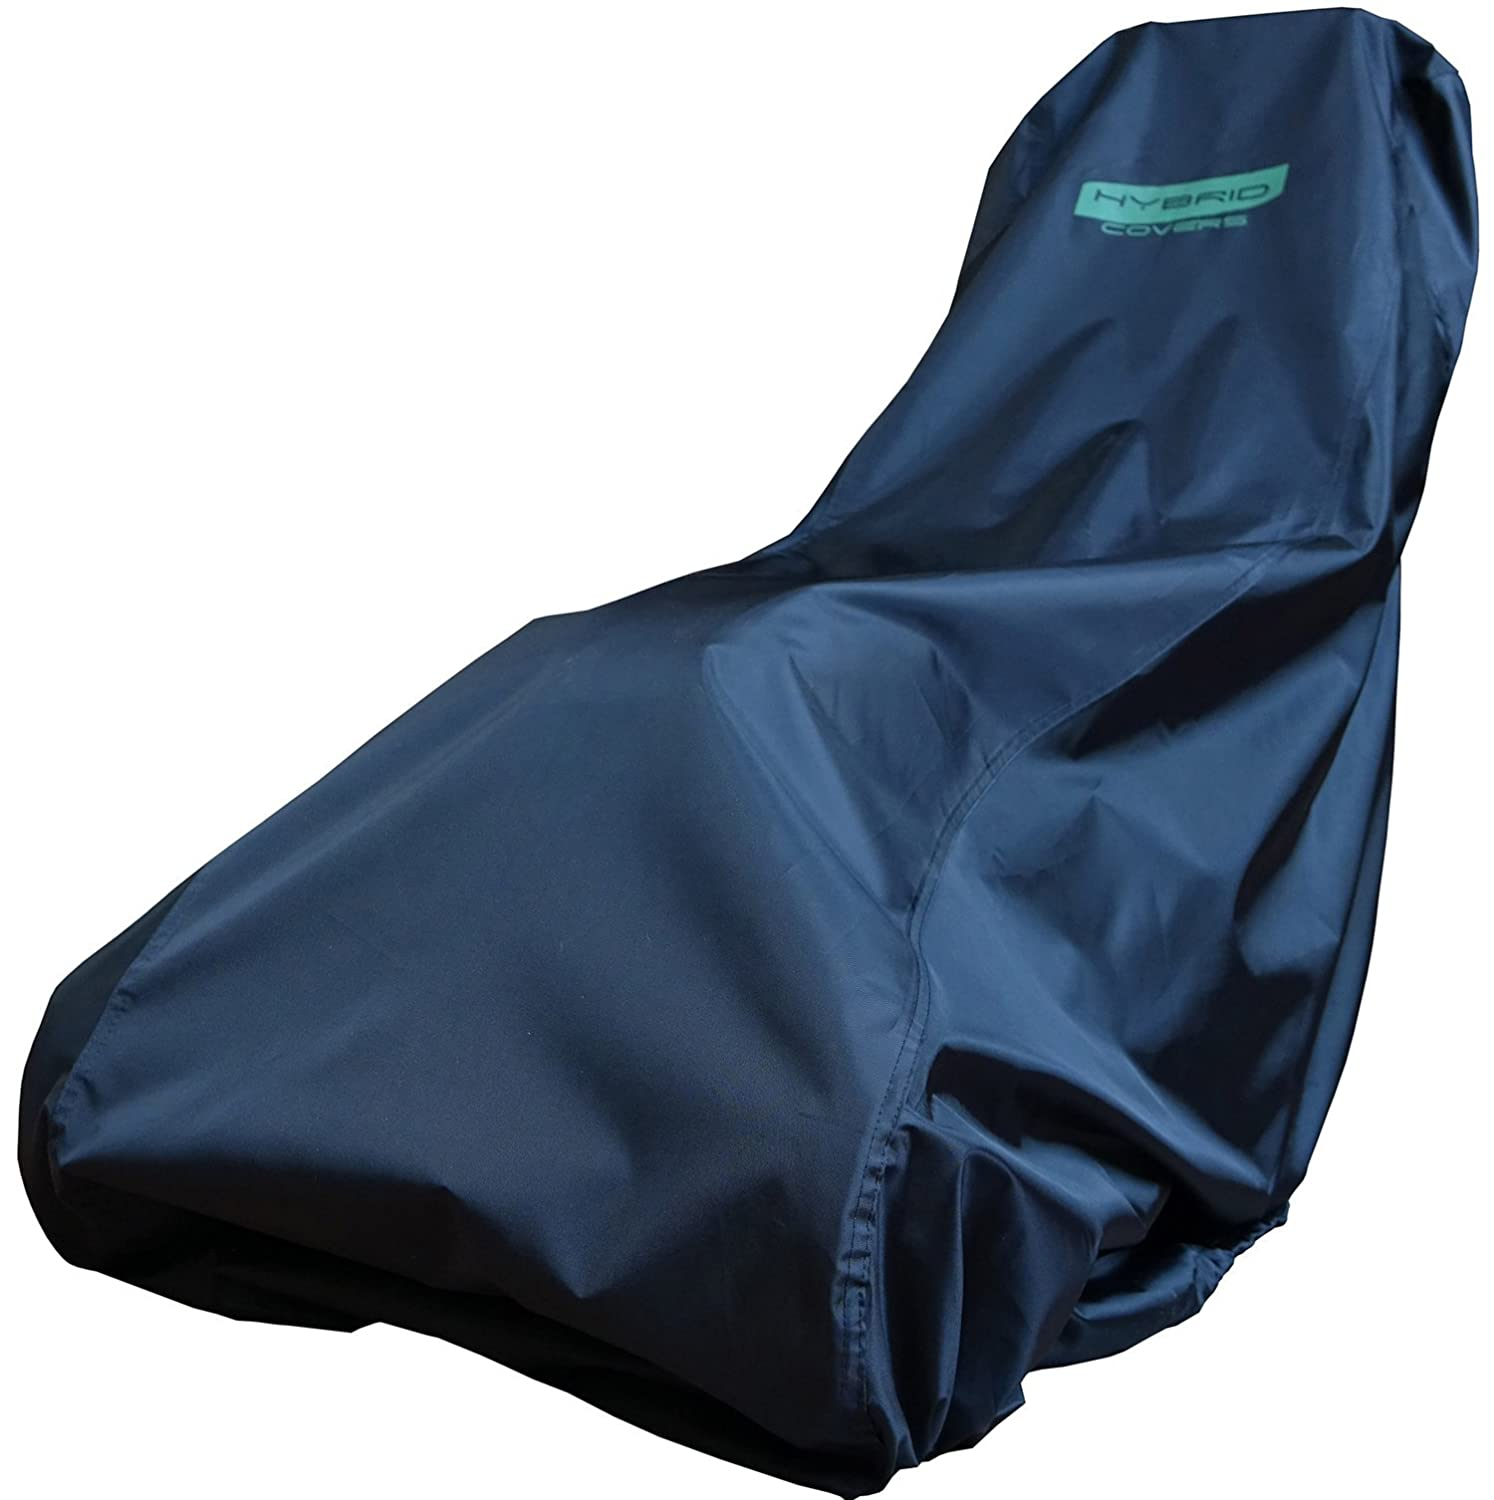 Lawn Mower Cover - Black, Water Resistant & UV Protected Cover for Your Push Lawn Mower - Universal Fit with a Draw String to Secure the Cover to Your Machine - Suits Most Mowers Small to Large - Protect Your Investment From the Elements Hybrid Covers